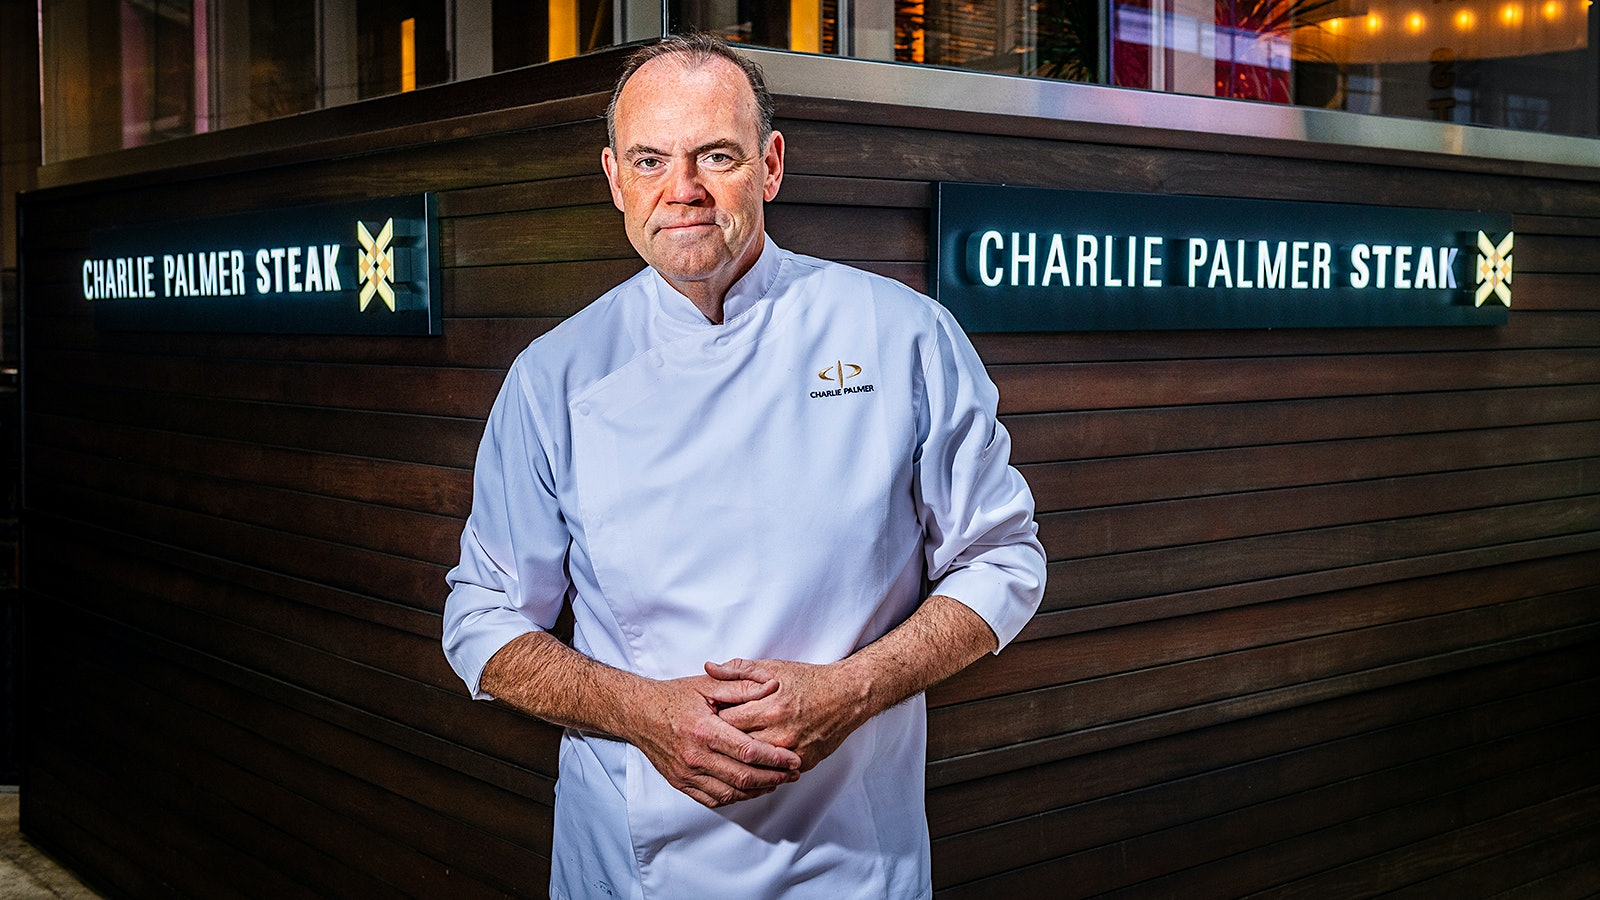 Chef Charlie Palmer in his chef coat in front of the signage at Charlie Palmer Steak NYC